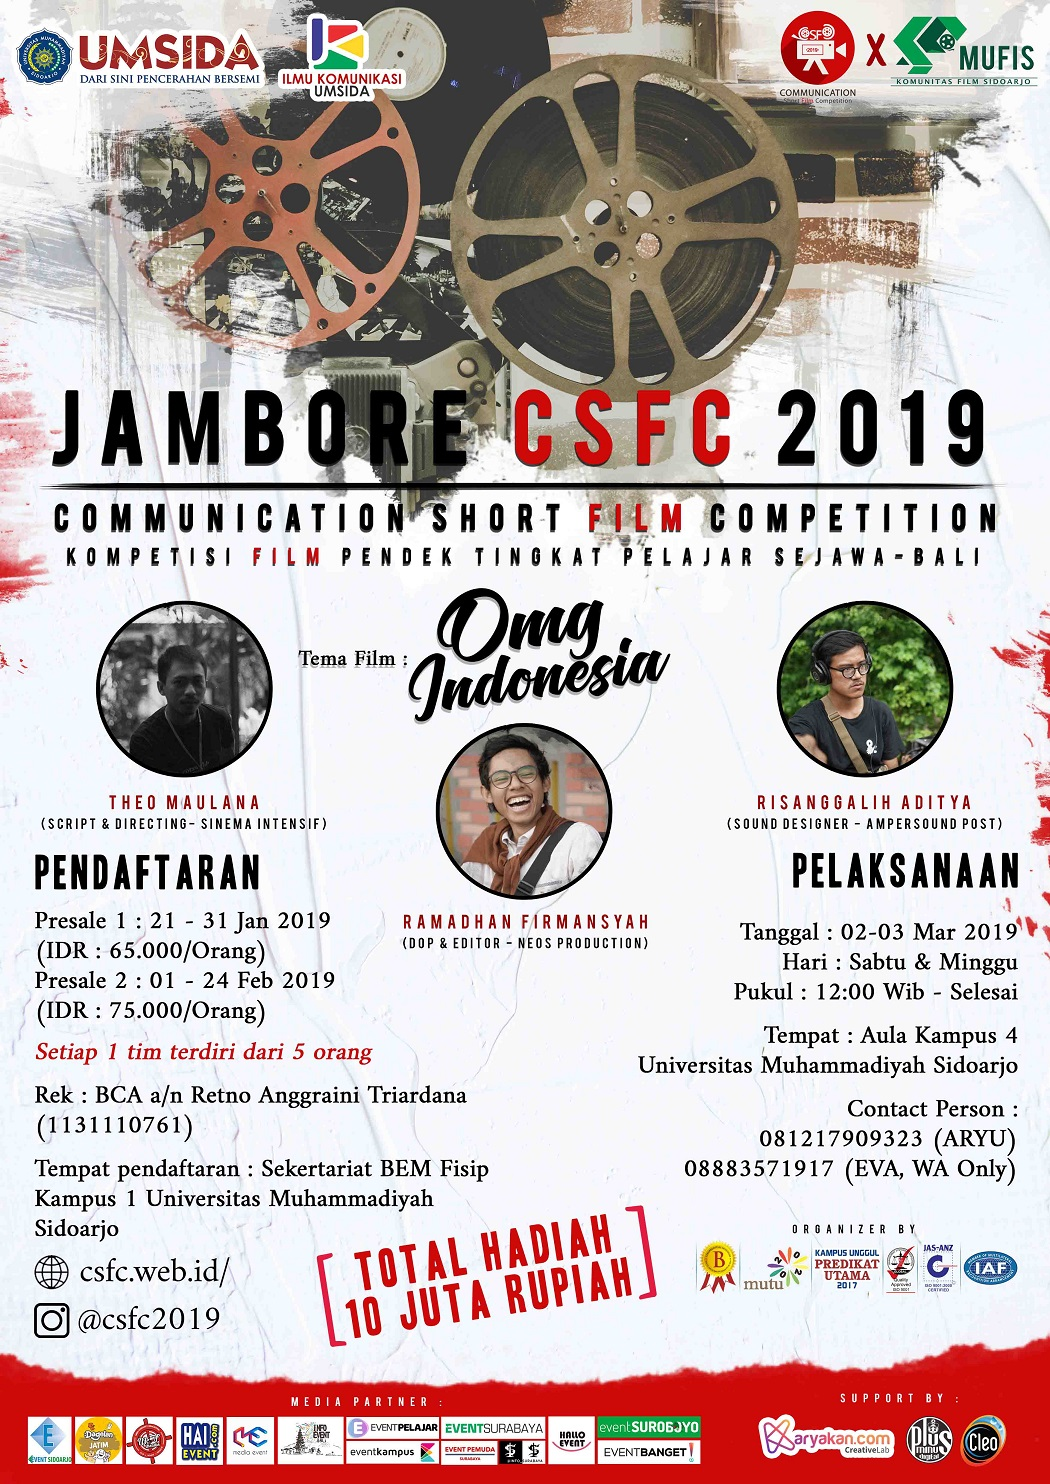 Jambore Communication Short Film Competition 2019